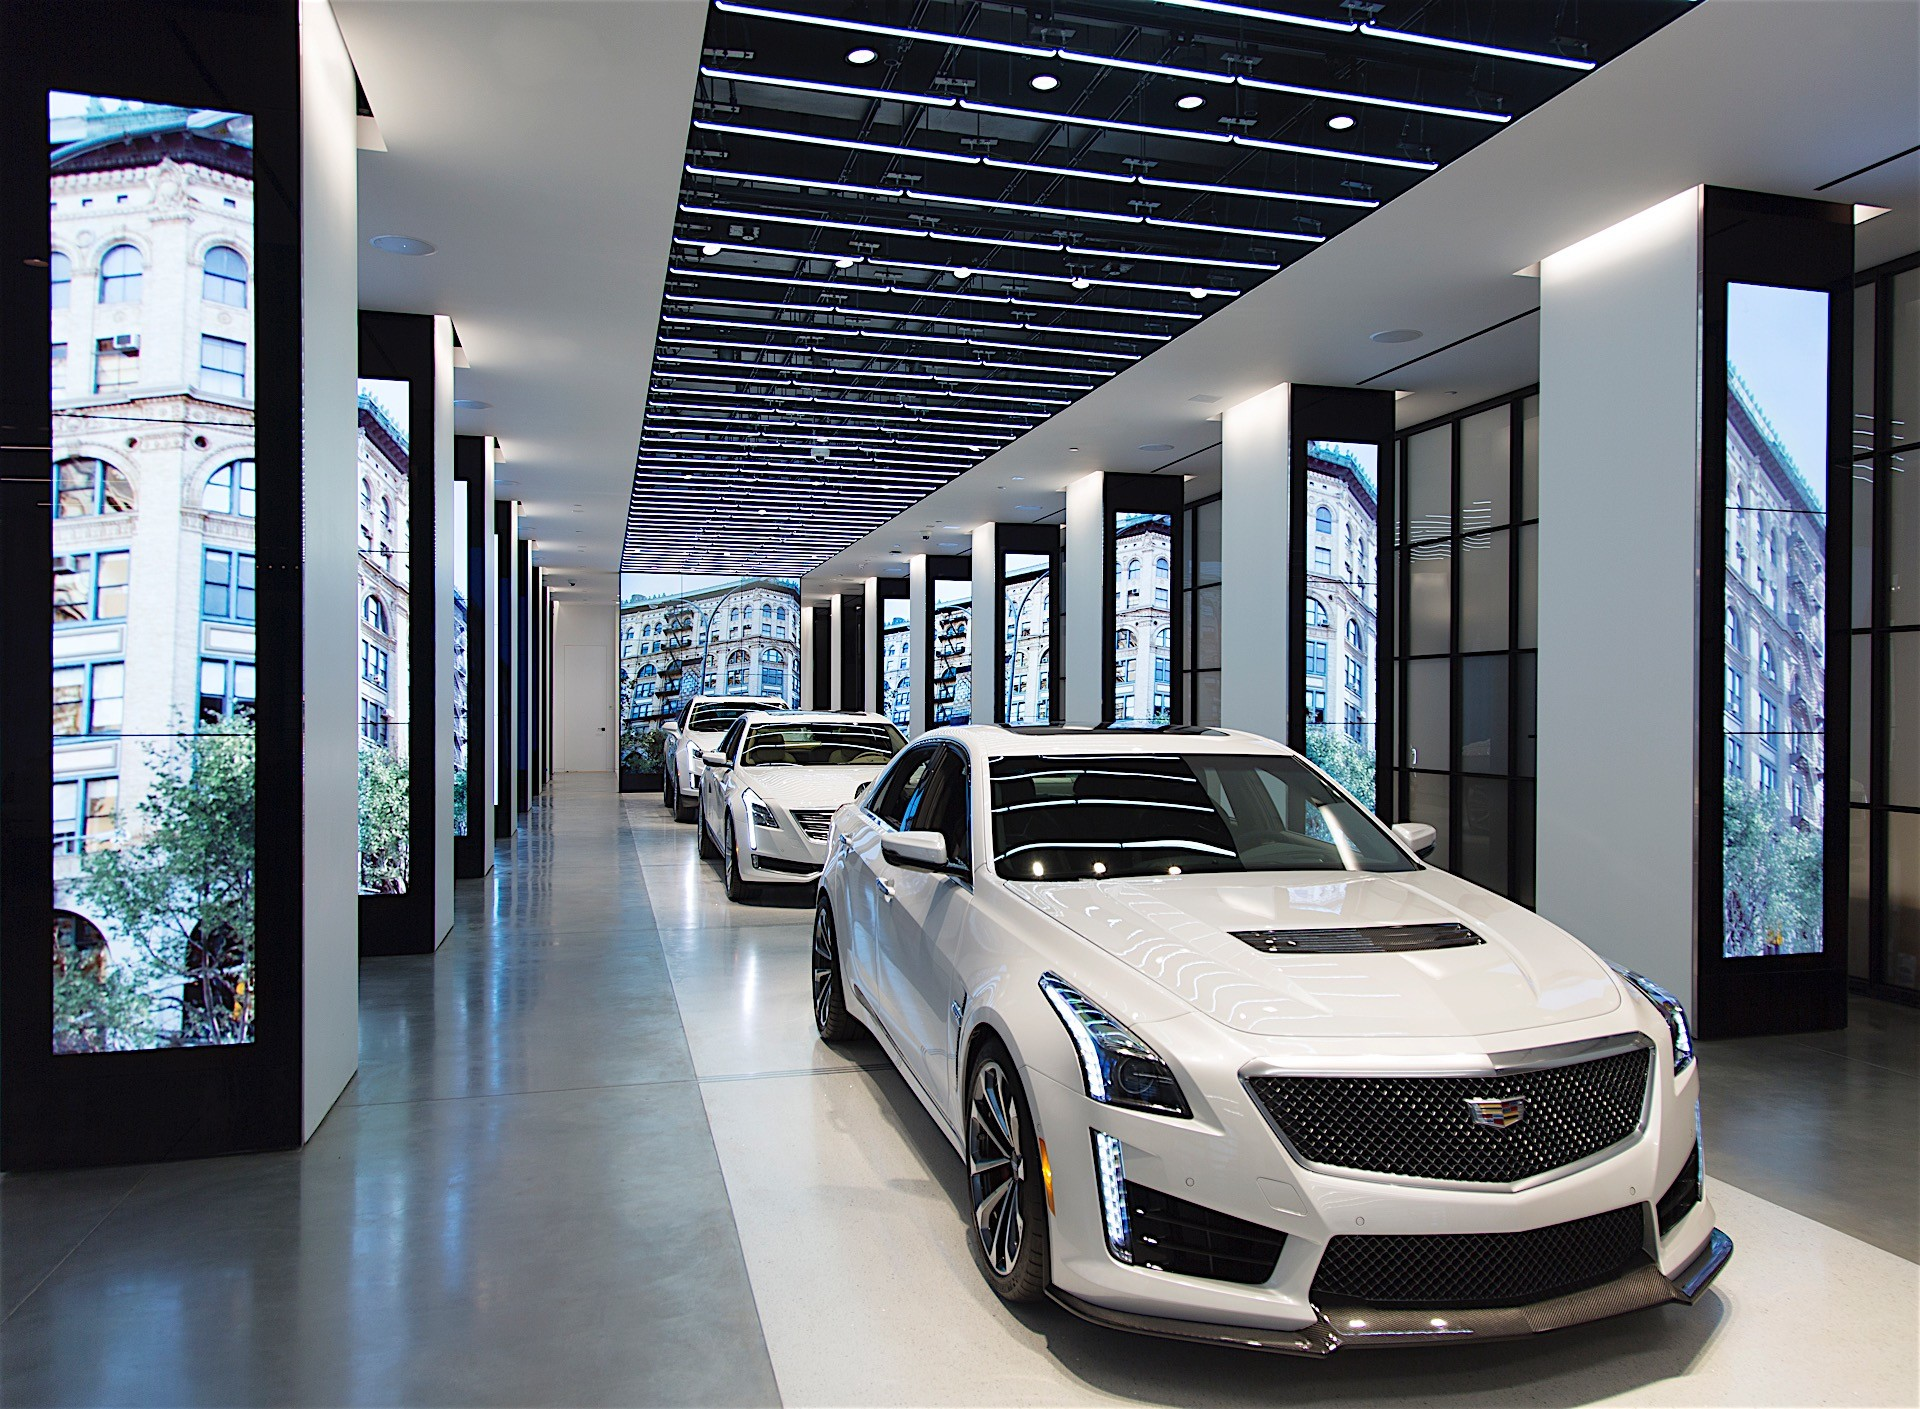 Chevy Cruze Reviews Consumer Reports Cadillac Opens Concept Store In New York, Calls It Cadillac House ...